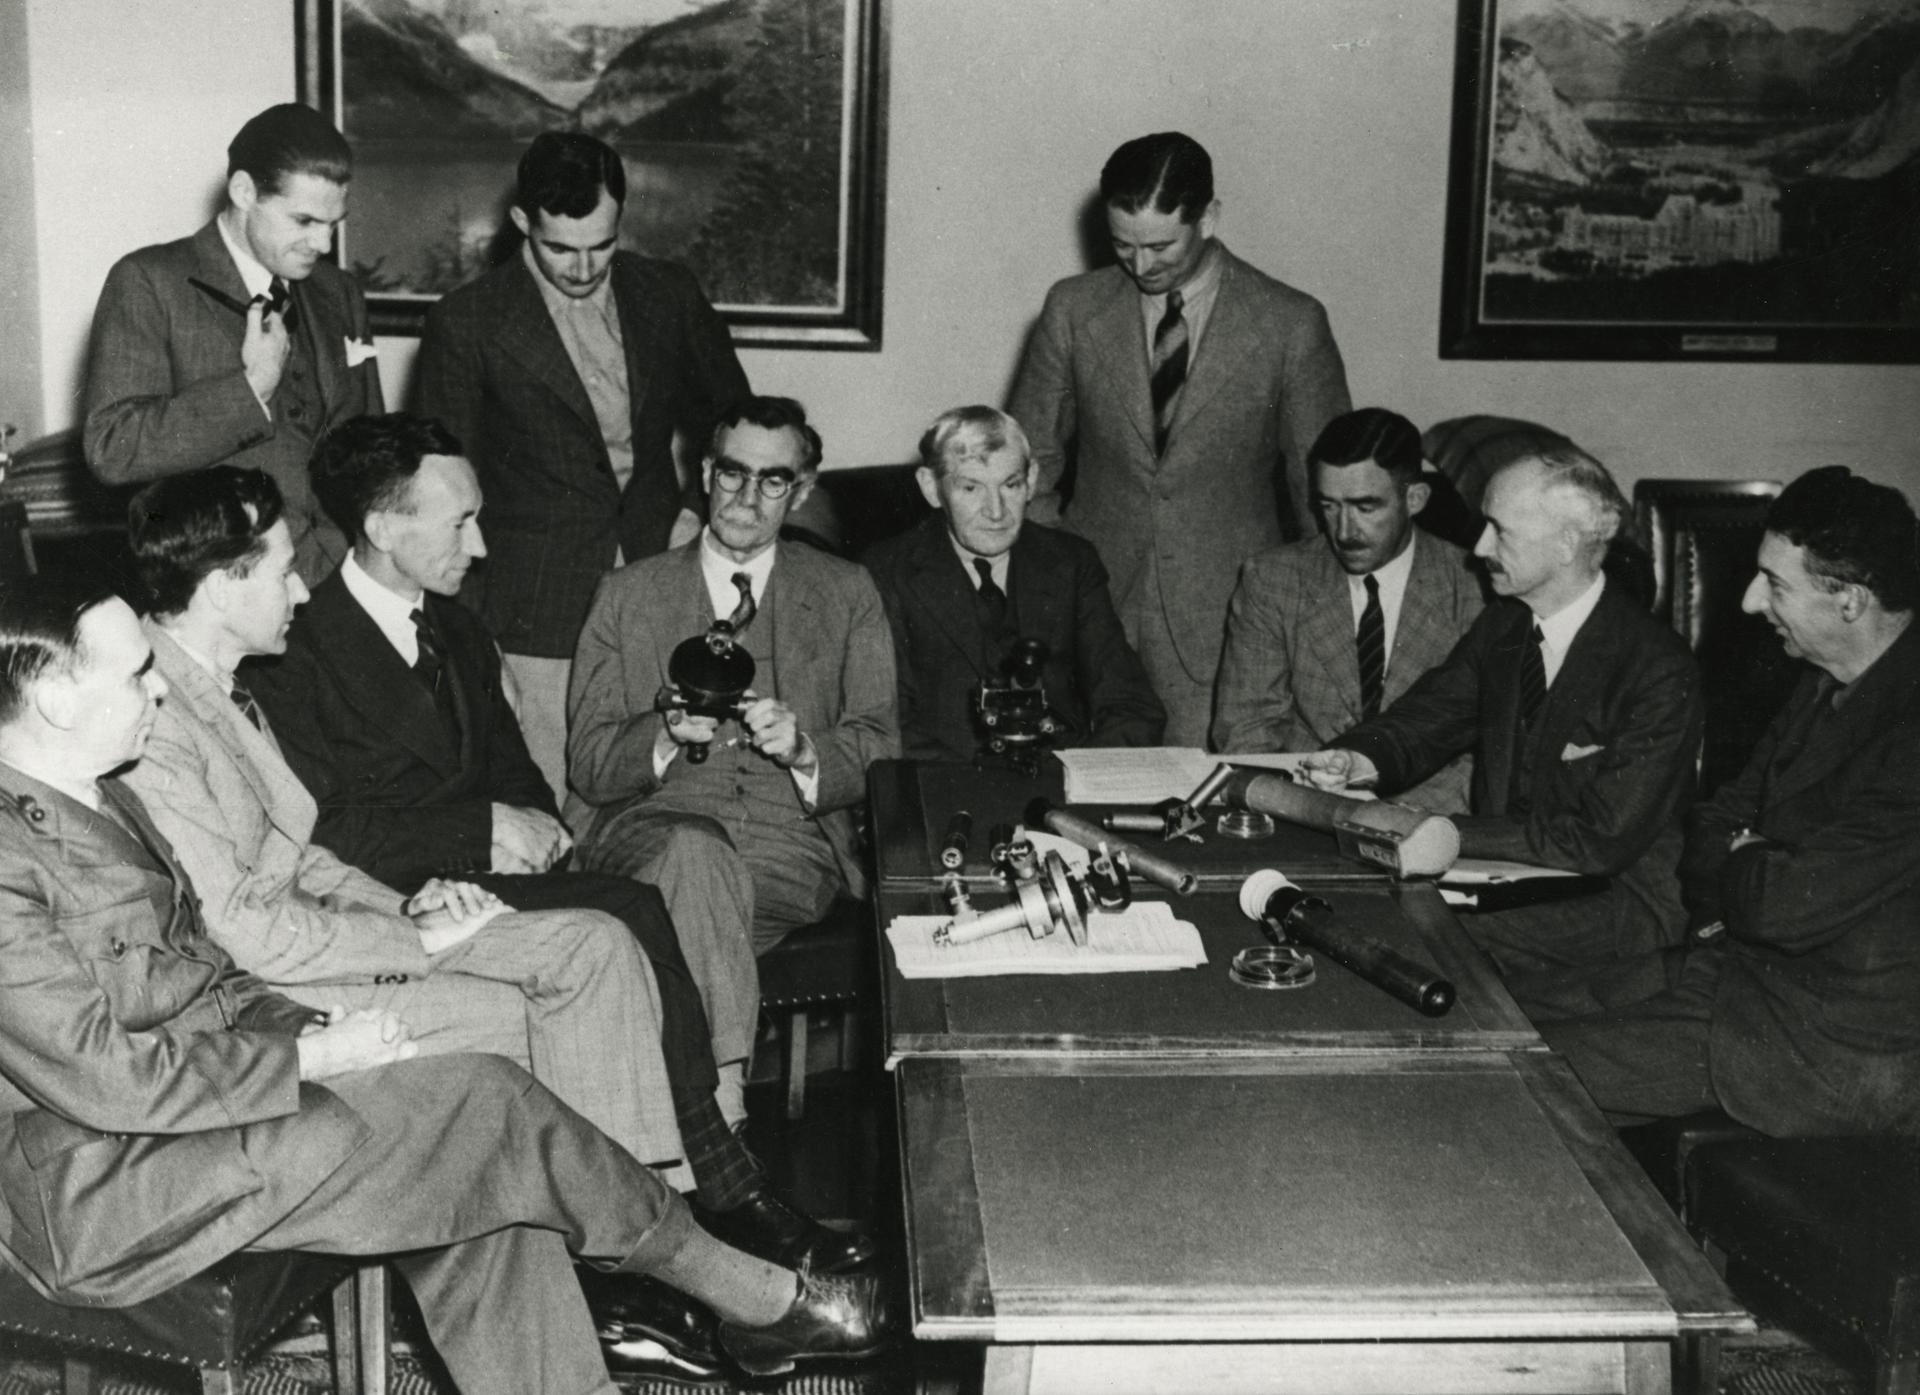 Dr J.S. Rogers (3rd from right), member of the Optical Munitions Panel